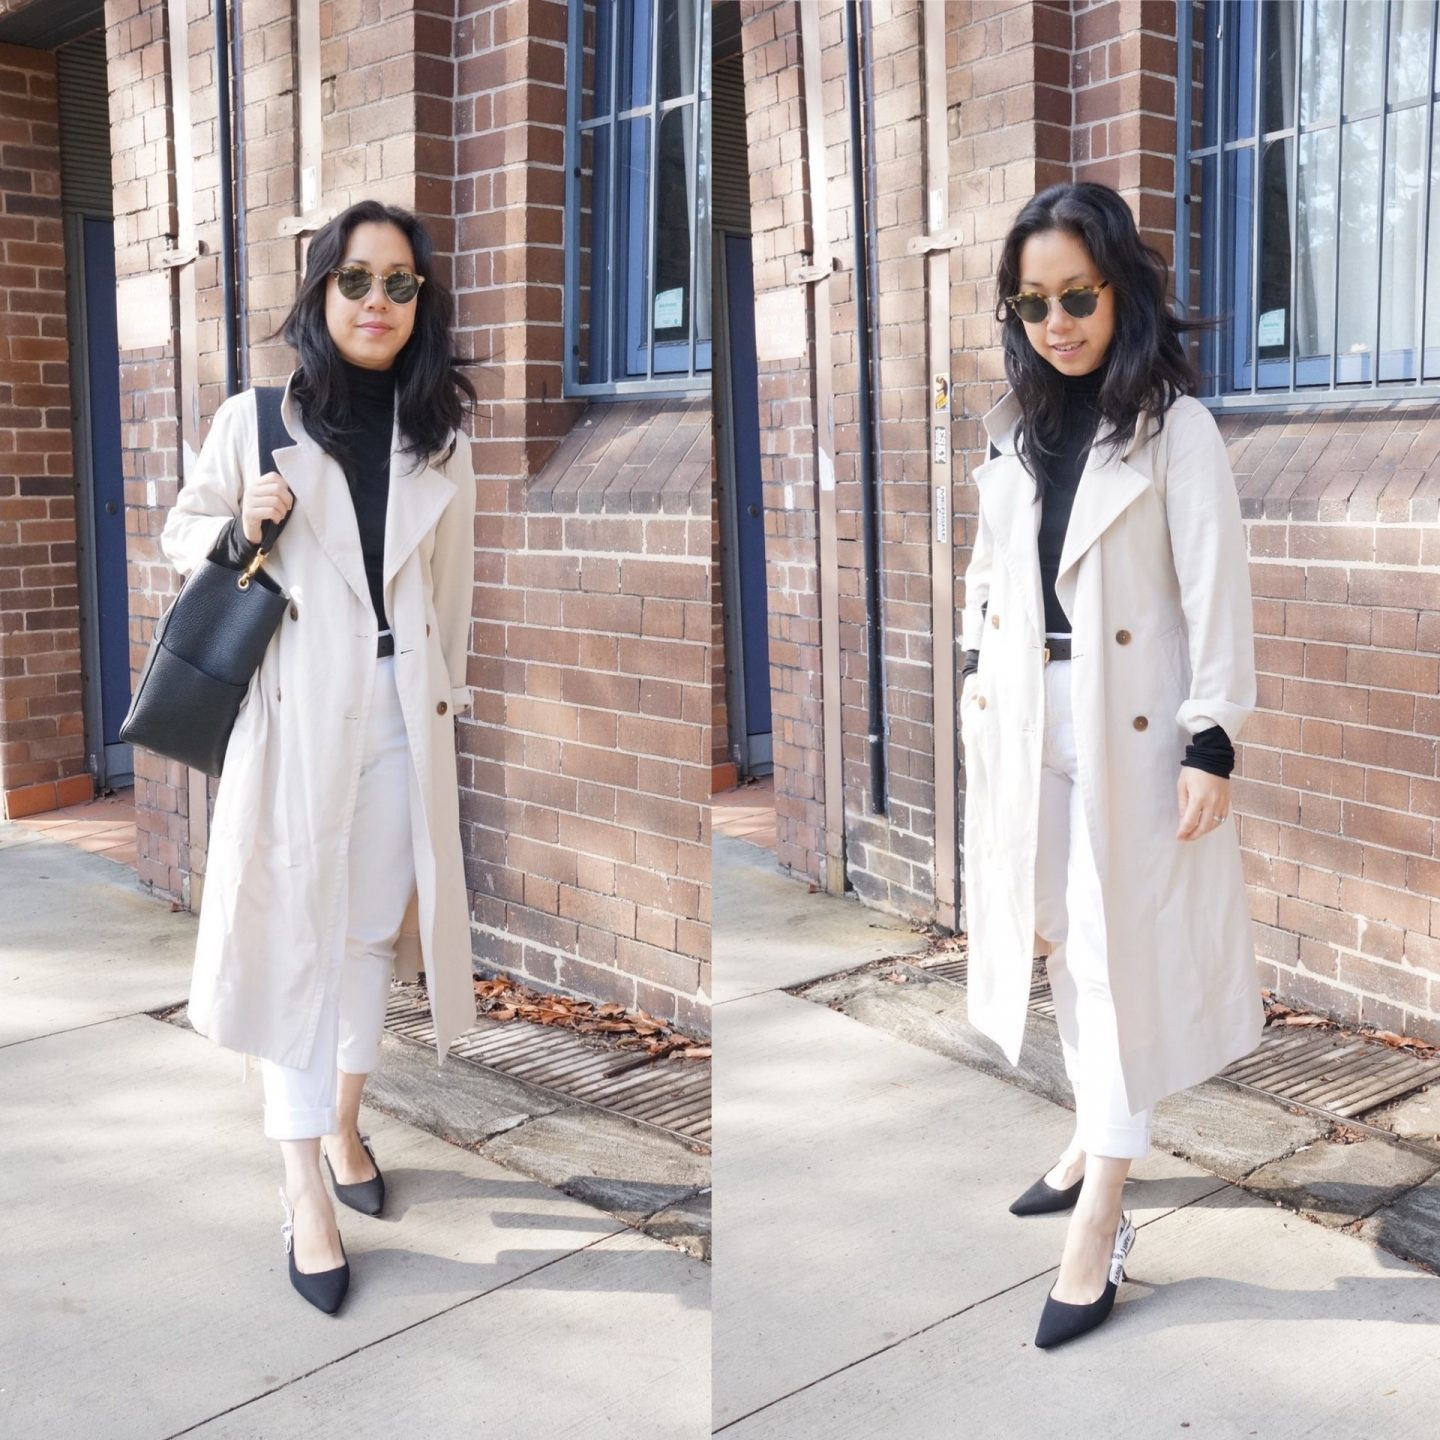 everlane drape trench coat in winter OOTD in business casual look